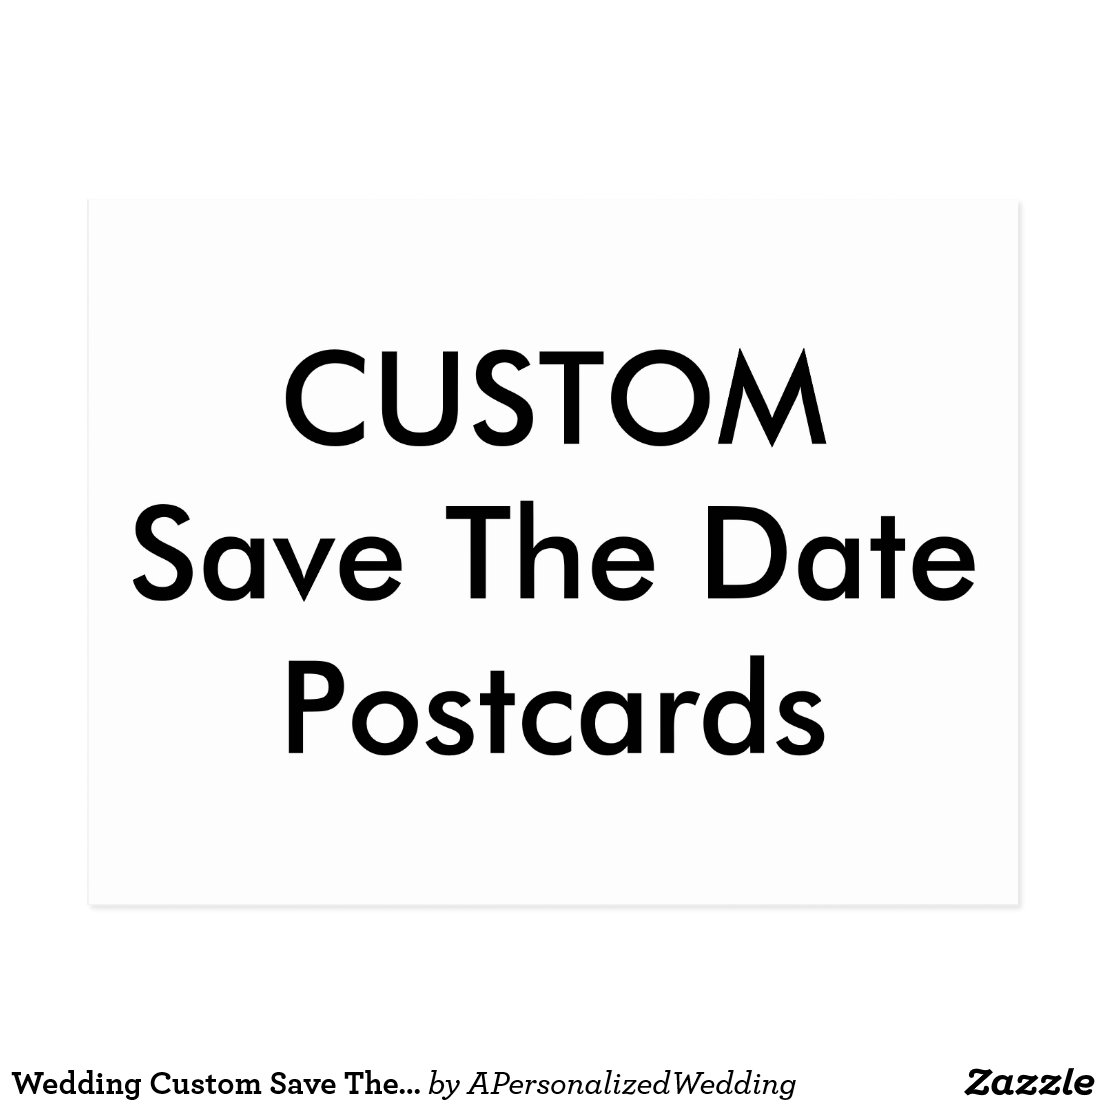 Wedding Custom Save The Date Invitation Postcards